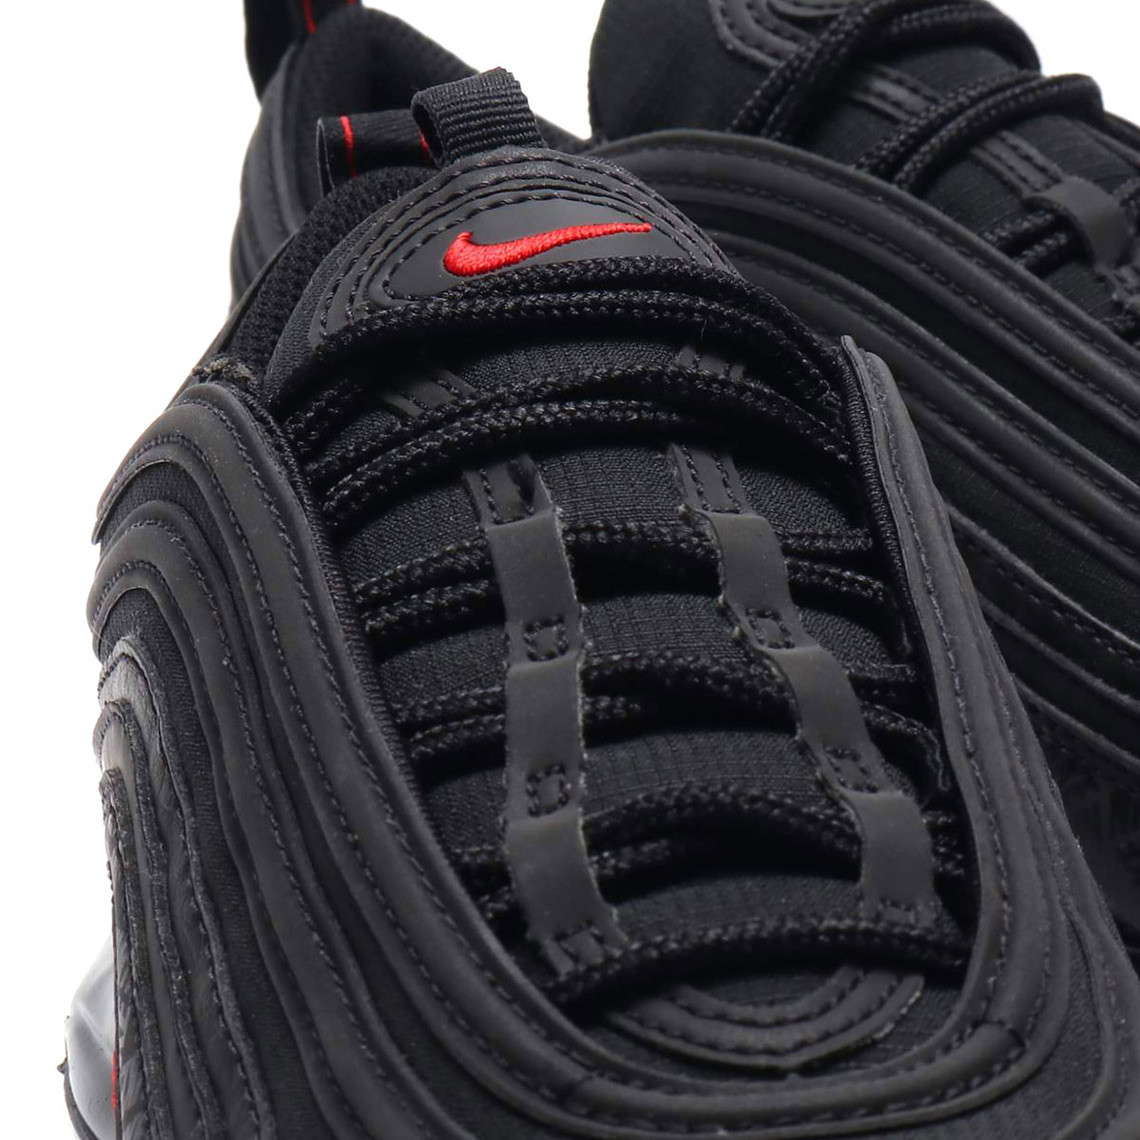 This New Air Max 97 Is Covered In Logos